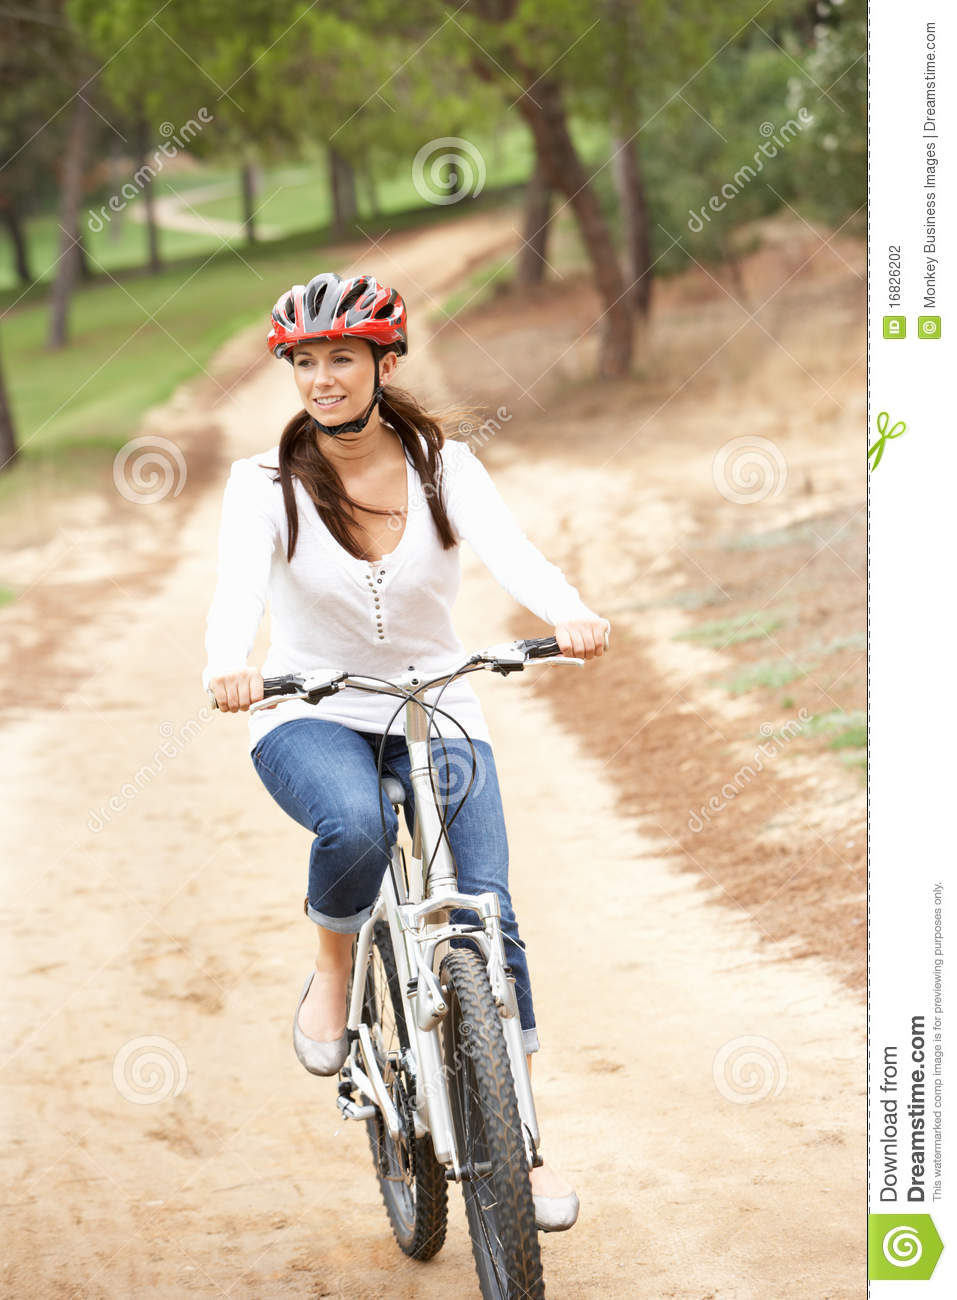 Woman Riding Bicycle In Park Stock Photo